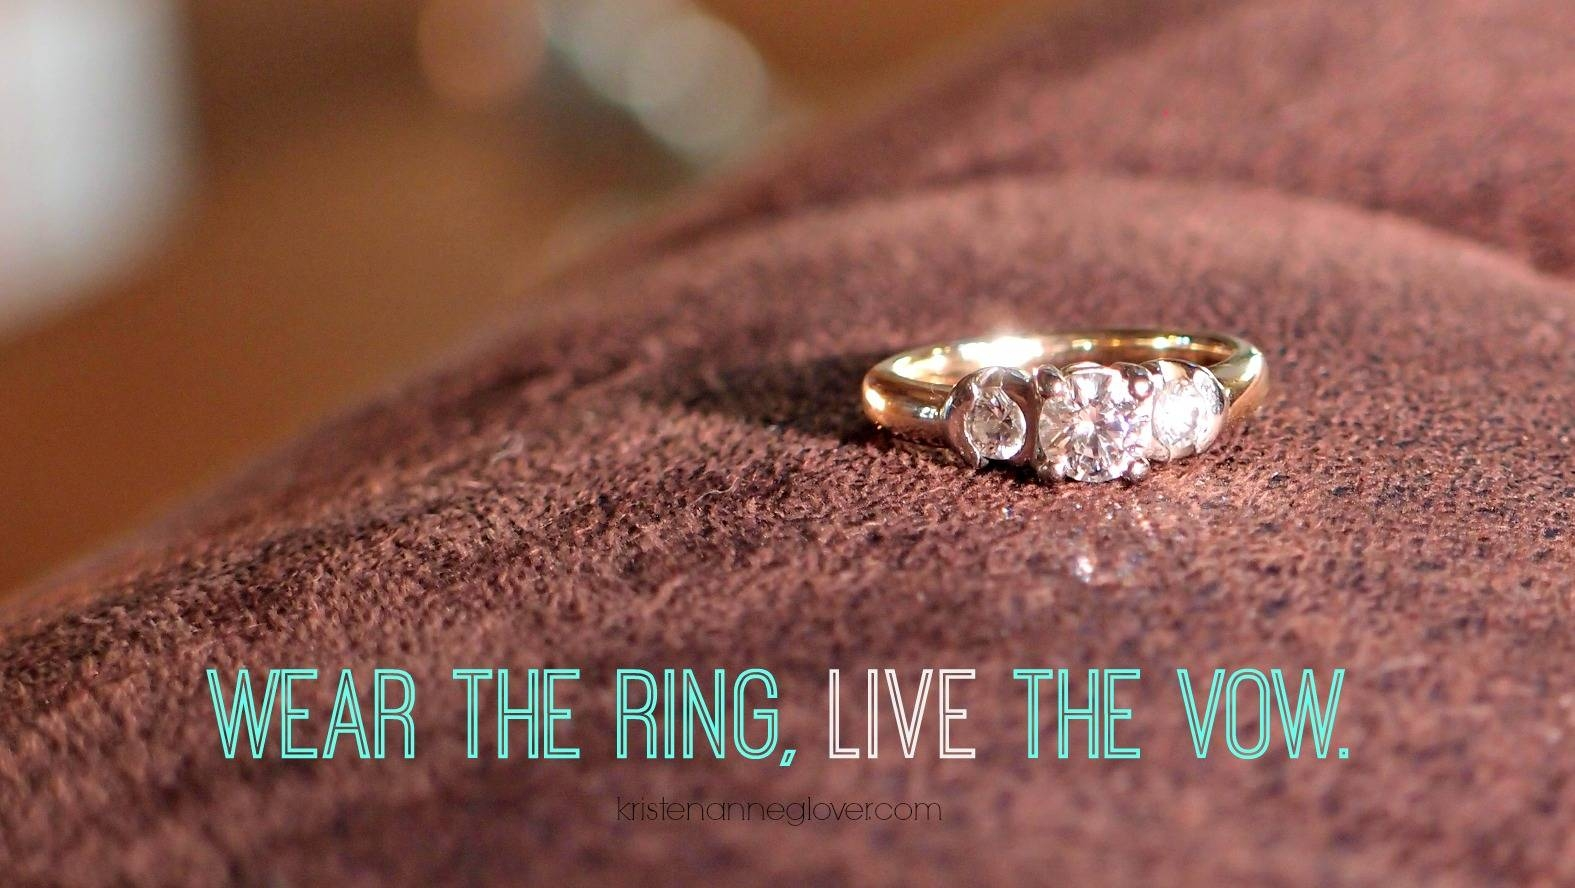 Why I Stopped Wearing My Wedding Ring – Kristen Anne Glover With Regard To The Vow Wedding Rings (View 10 of 15)